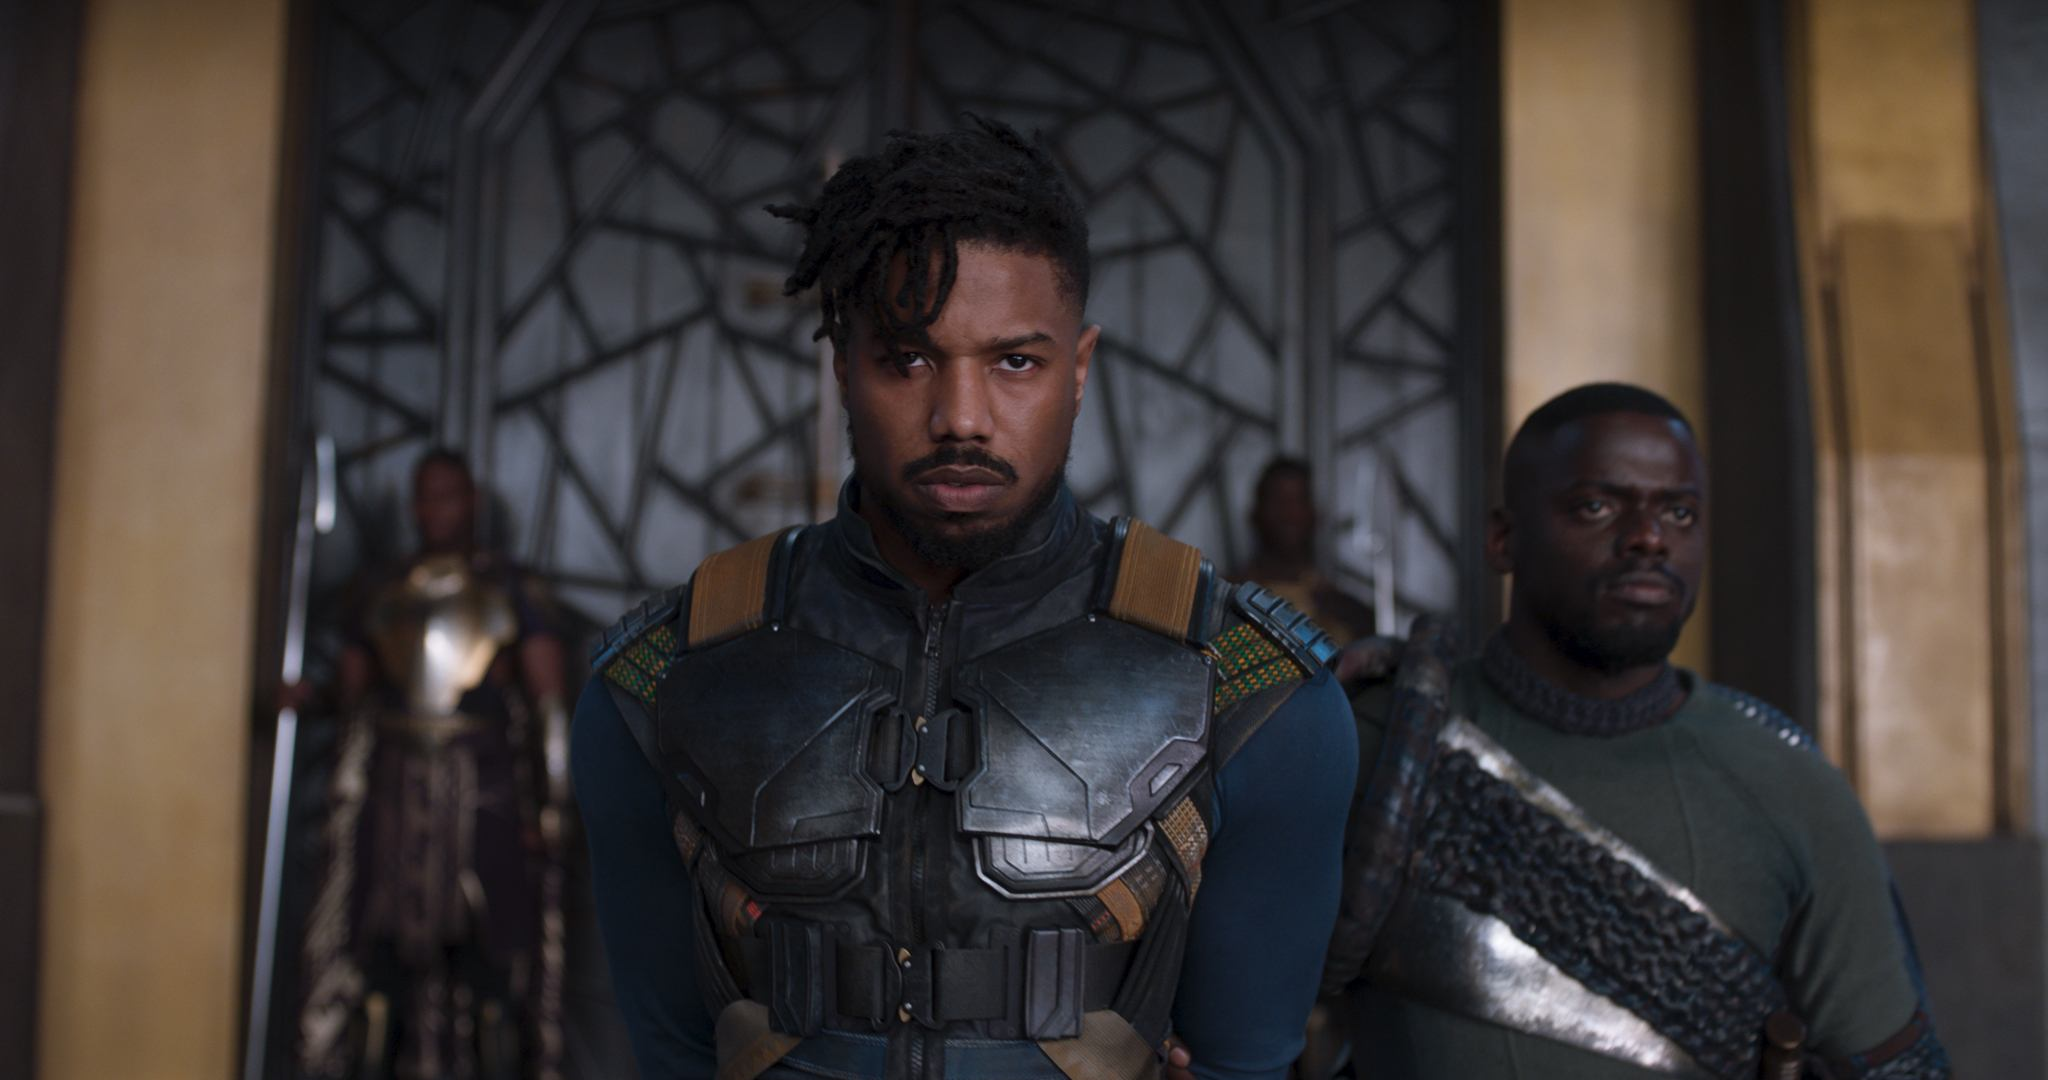 Michael B. Jordan's Killmonger wears an armored vest in Black Panther